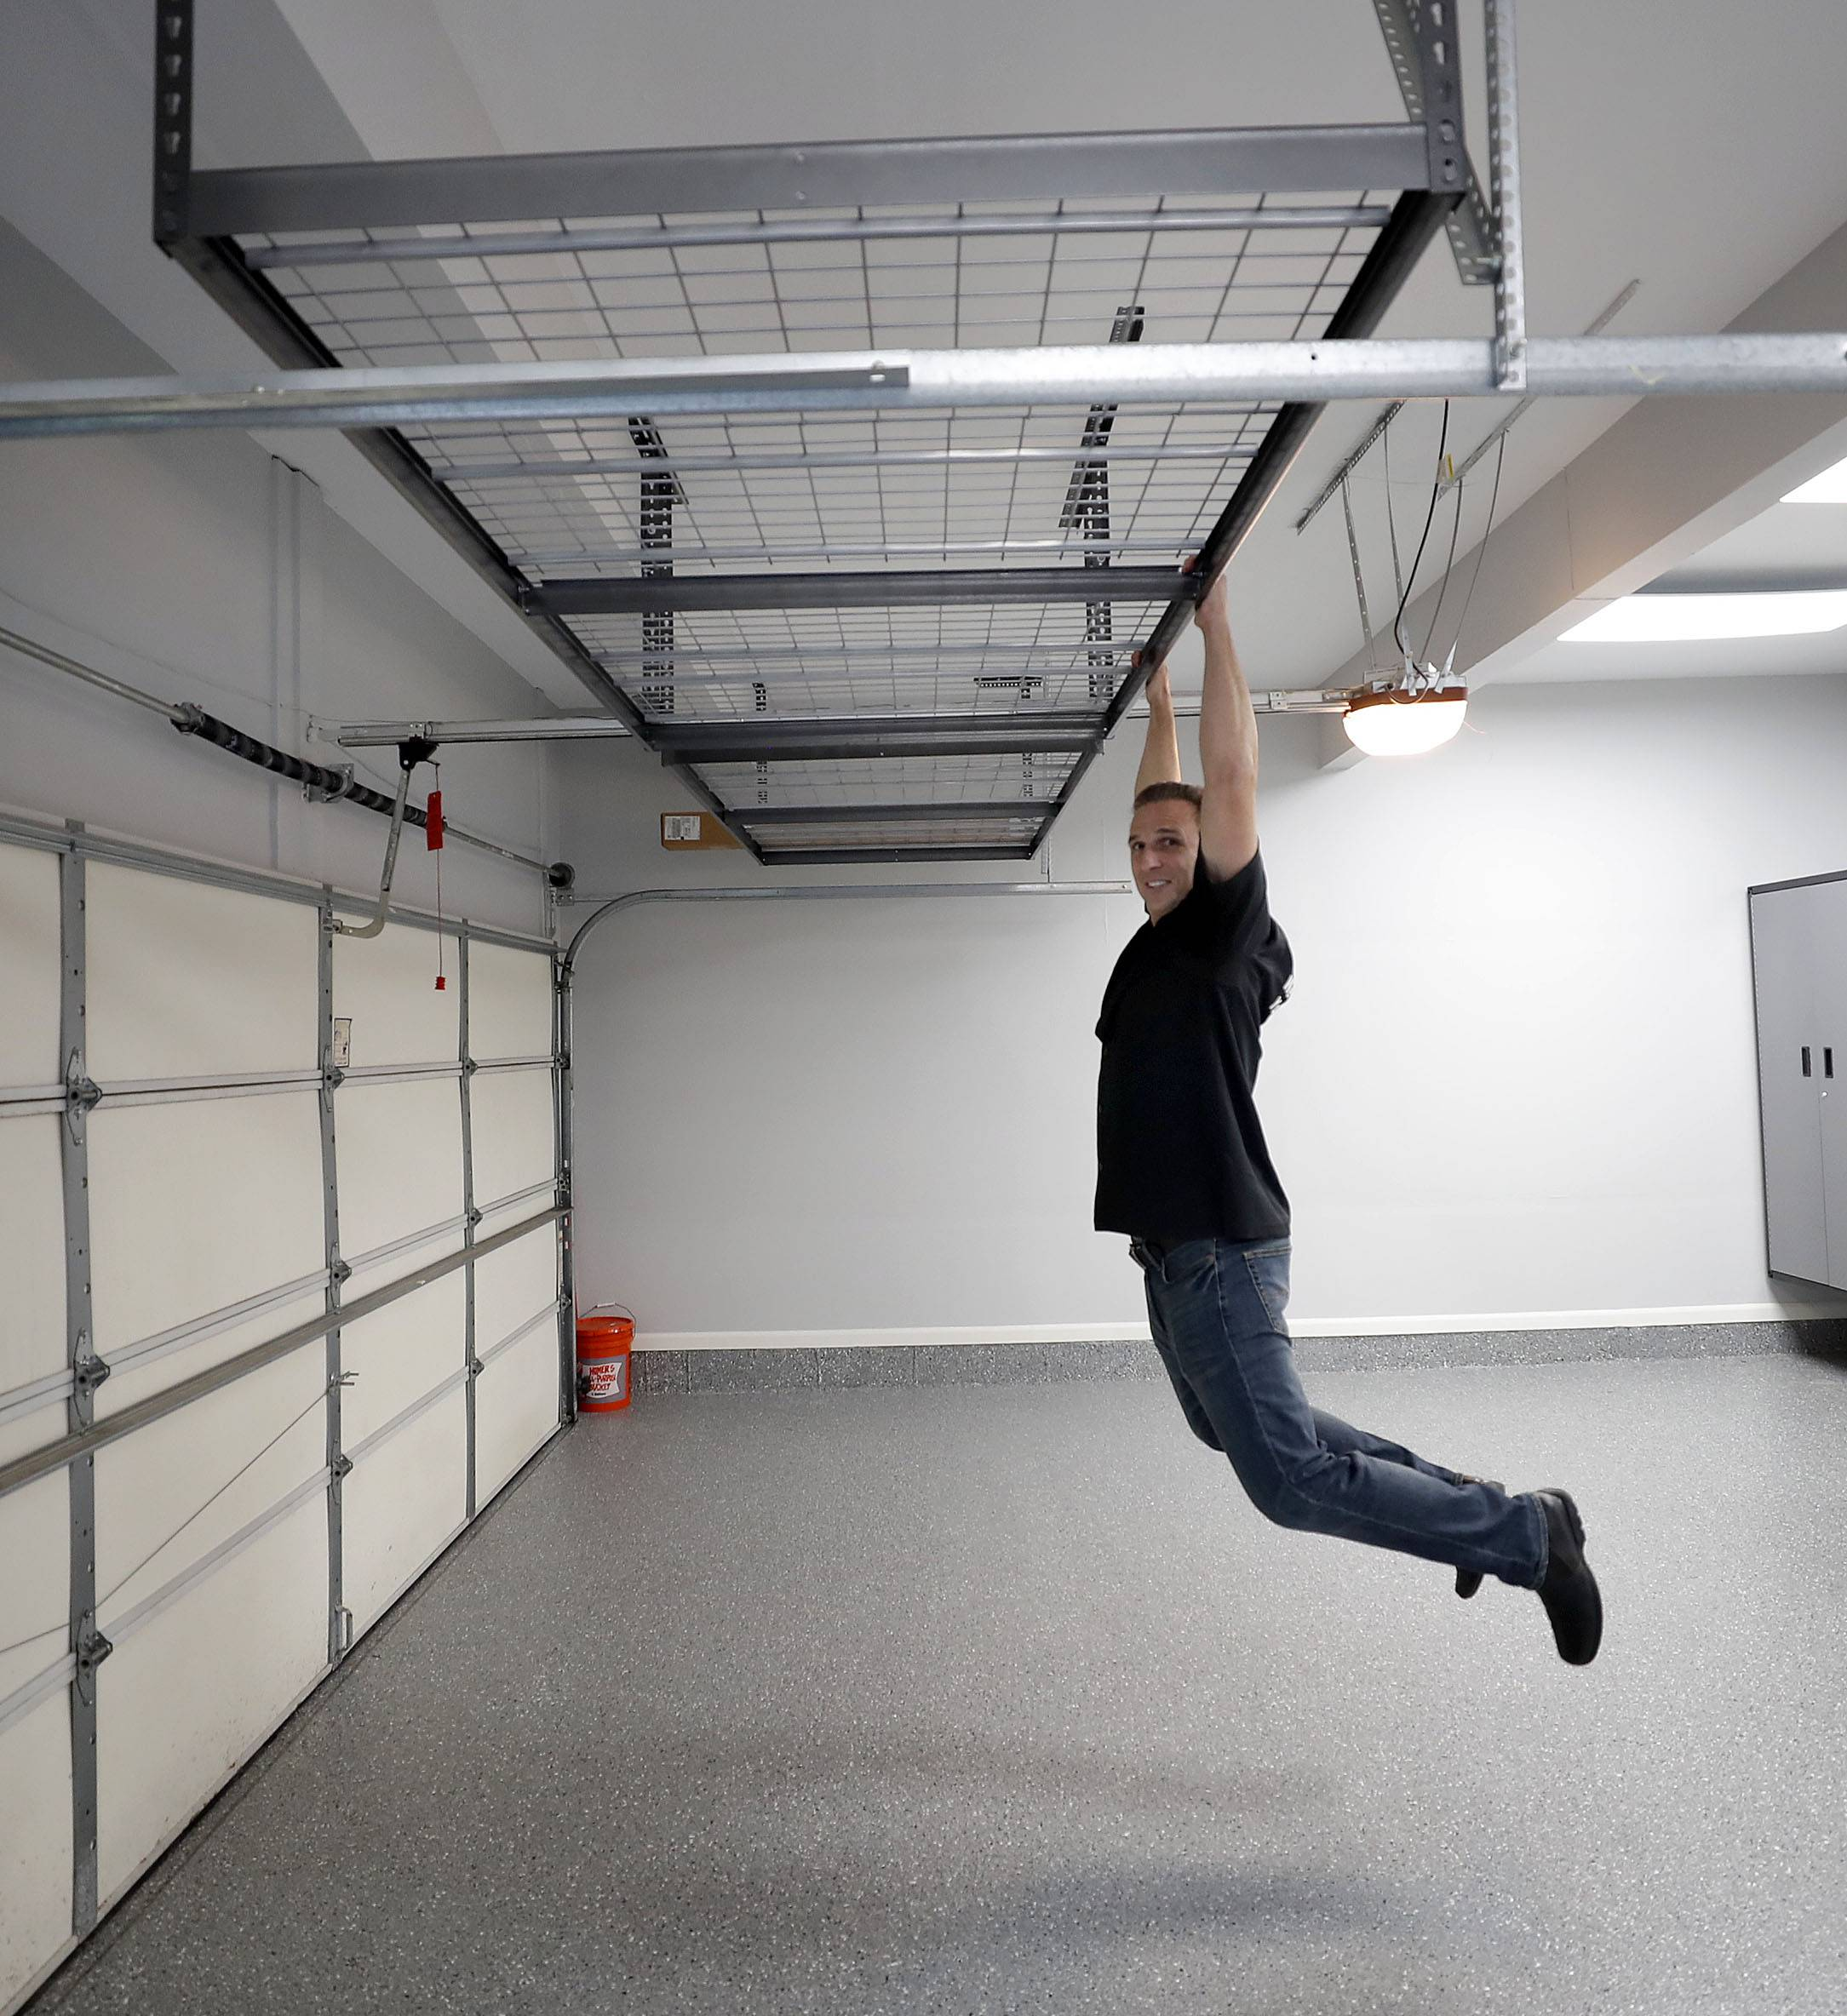 Garage Store owner Jim Melchert shows the strength of an overhead storage rack installed in Matt Joseph's garage in Vernon Hills.